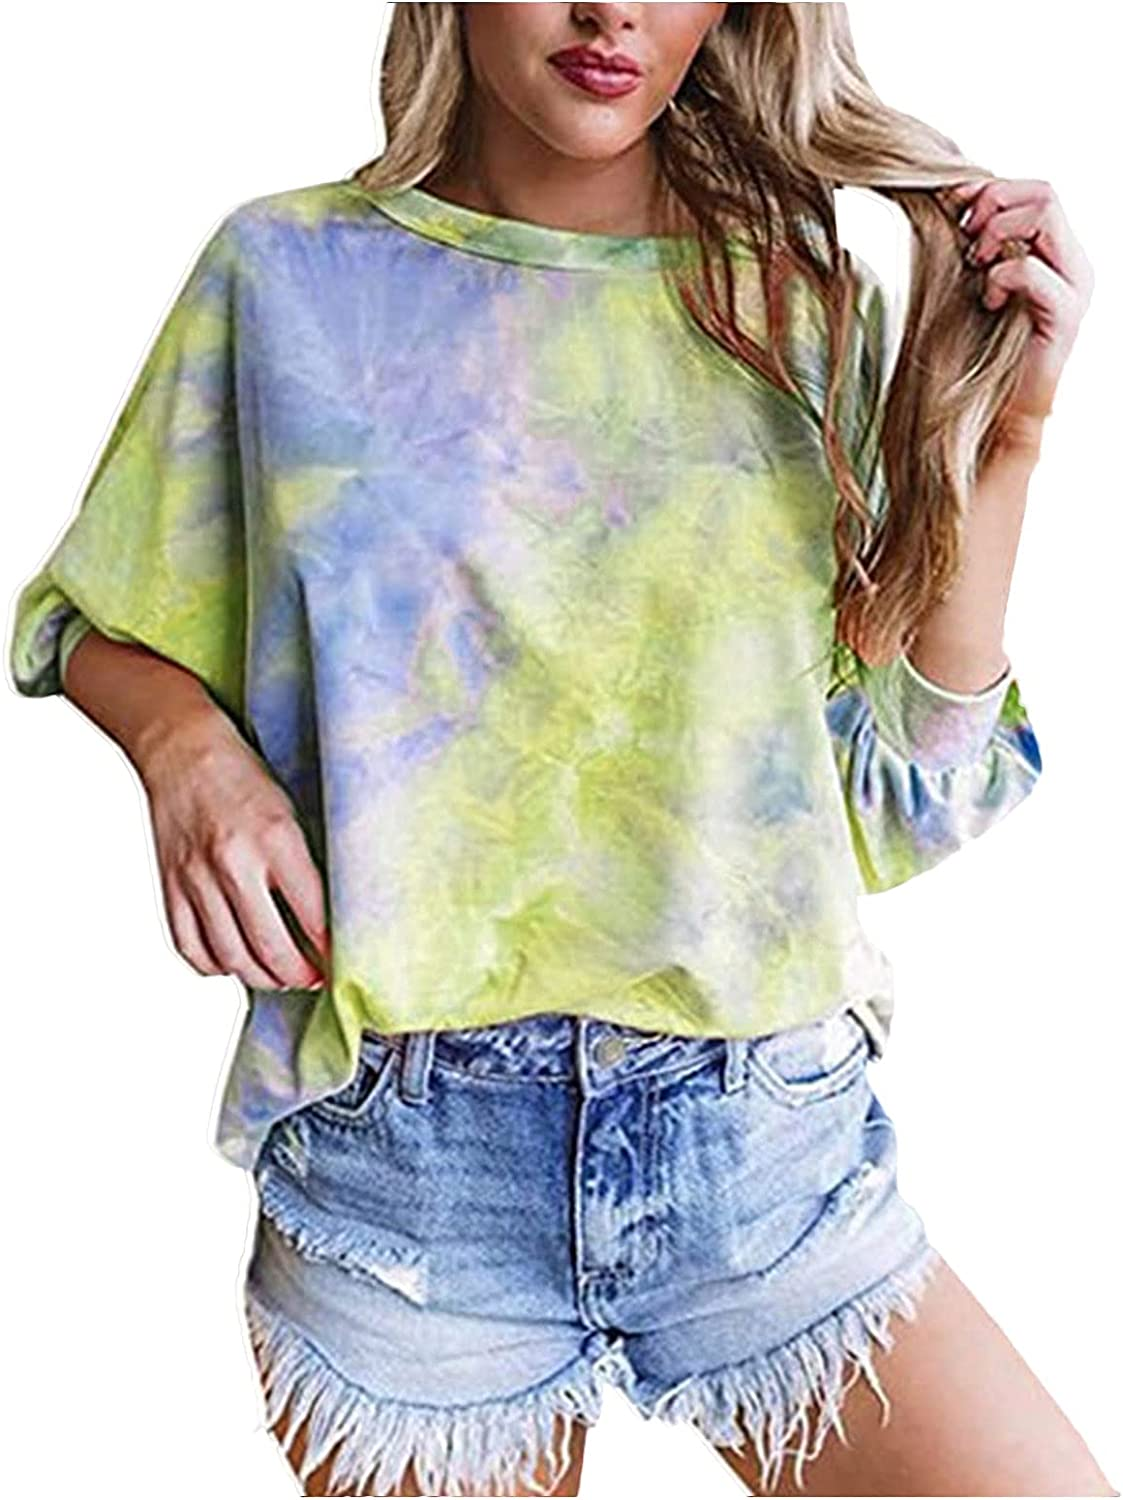 Tops for Womens Casual Summer Colorful Ranking TOP10 Crewneck Las Vegas Mall Shir Tie Dye Tee